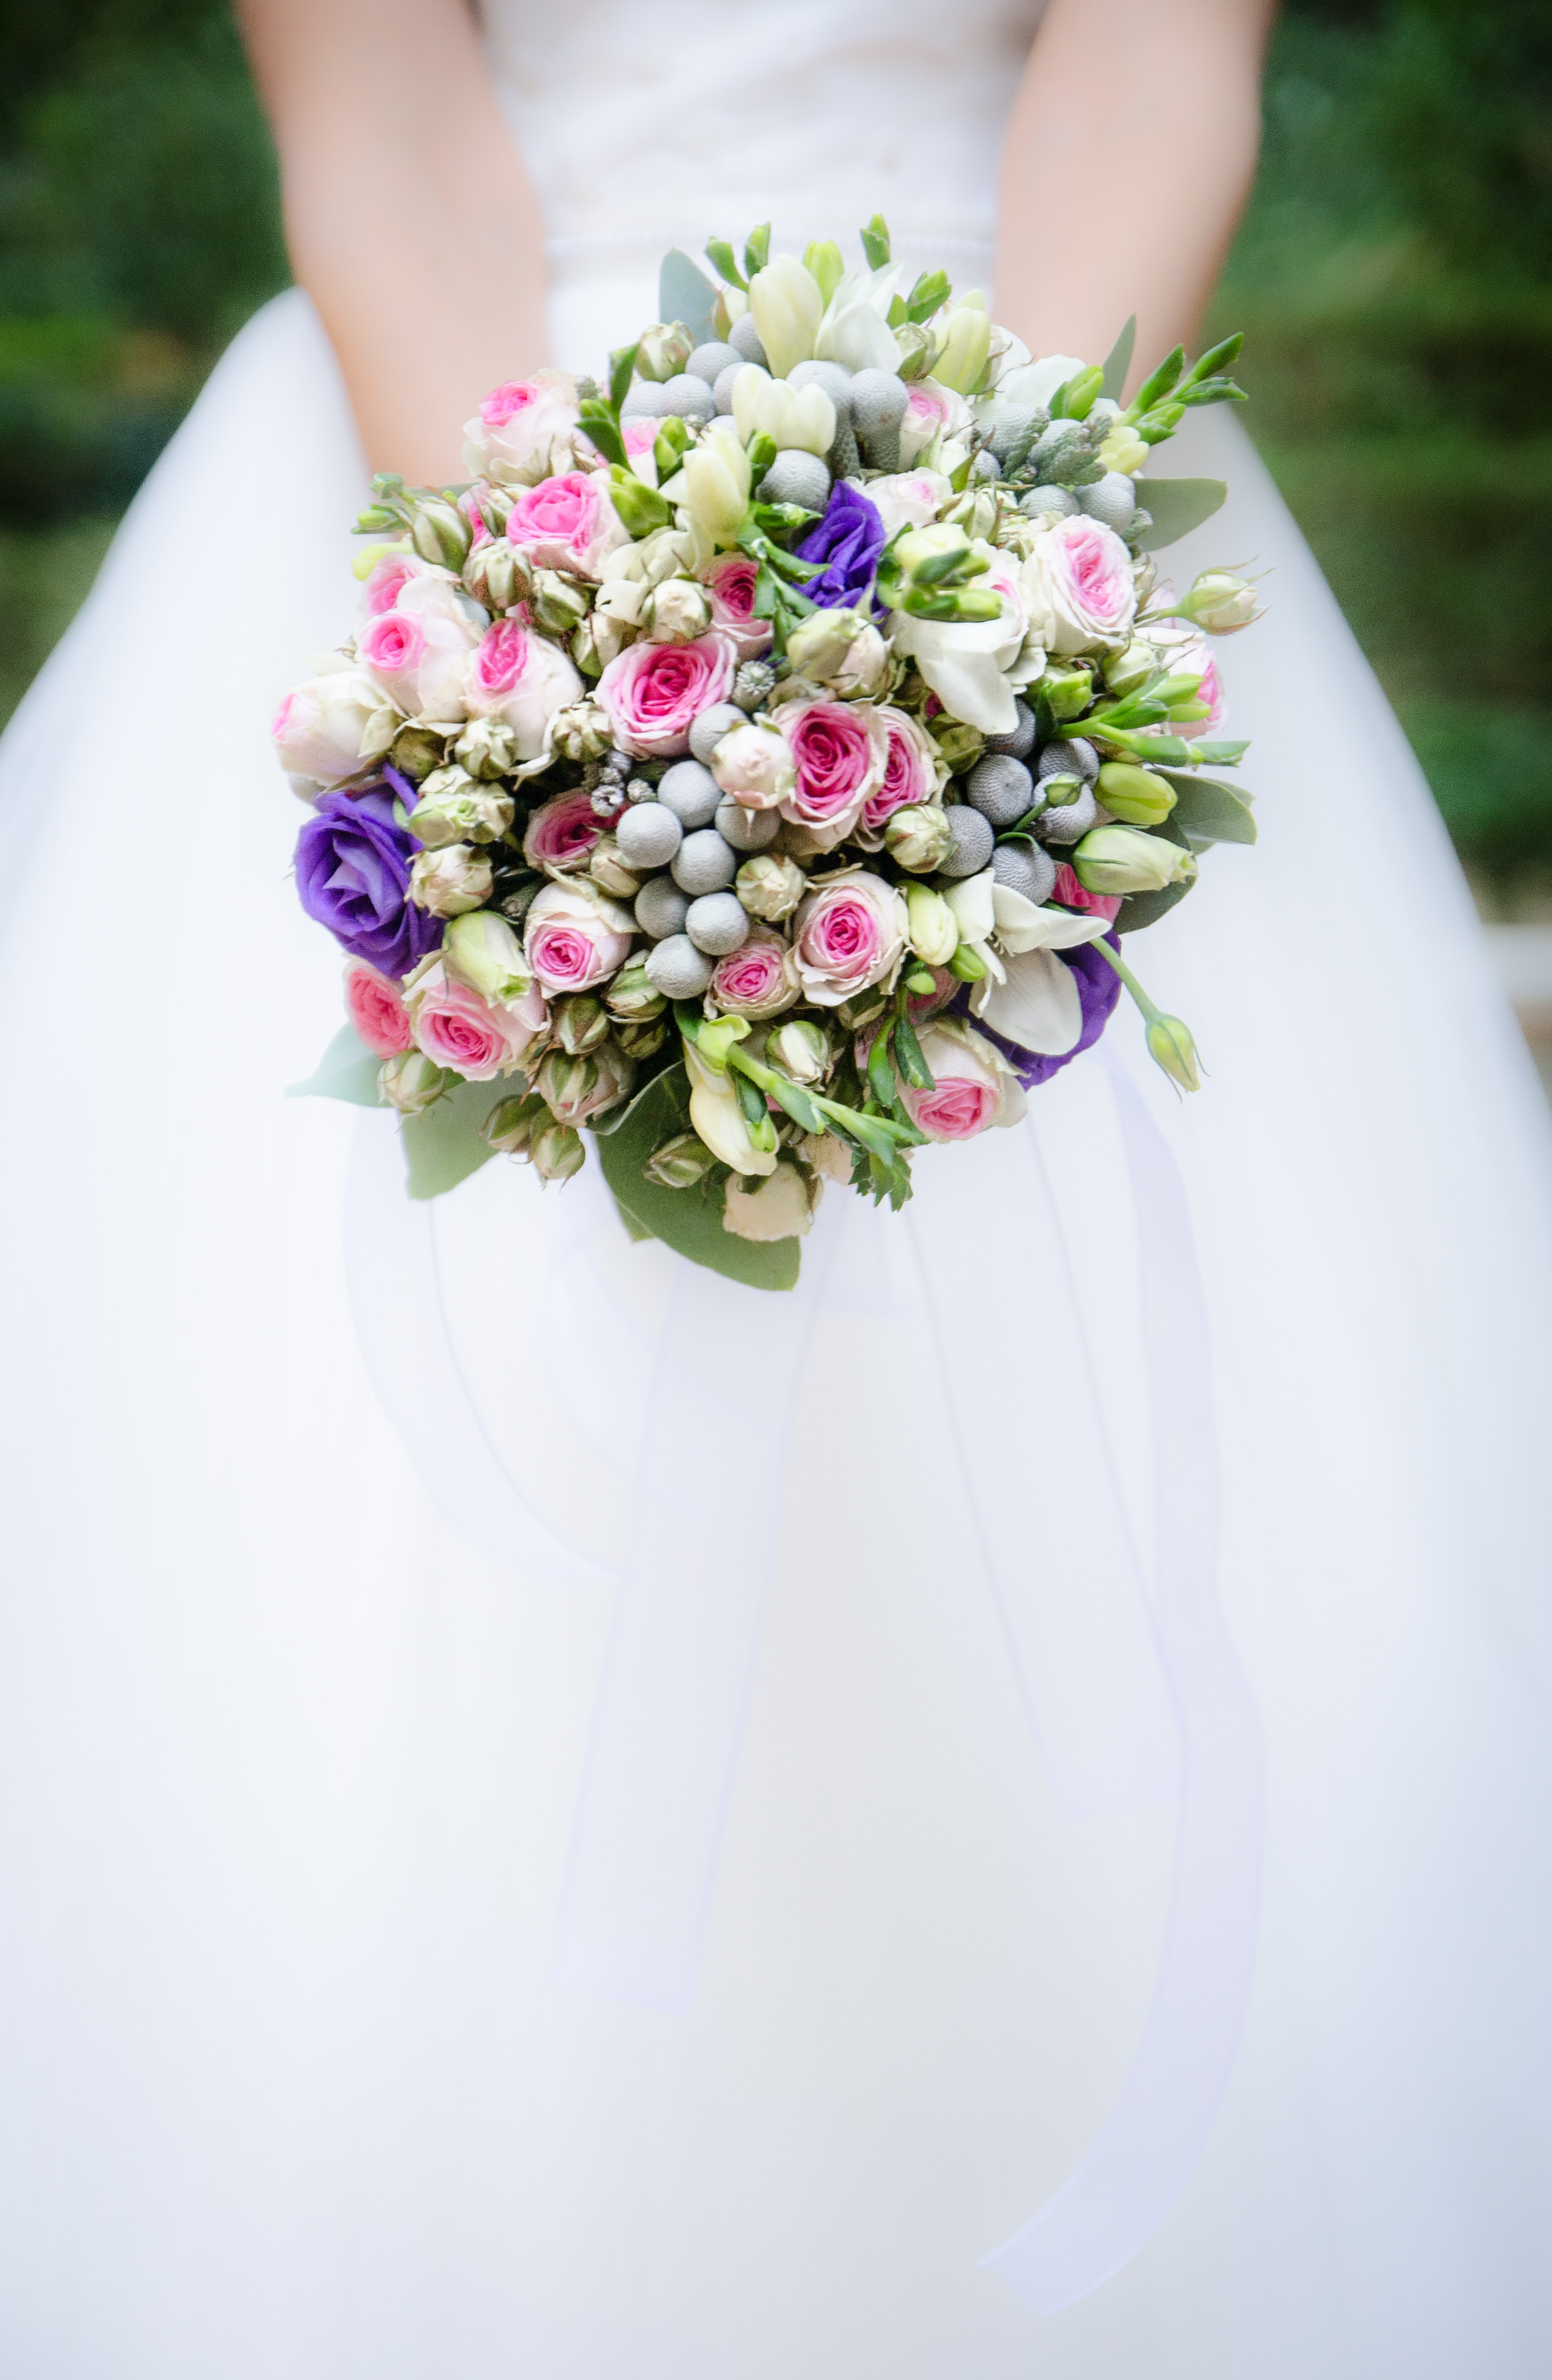 Bride Holding Bouquet Of White And Pink Flowers Photo Free Blossom Image On Unsplash